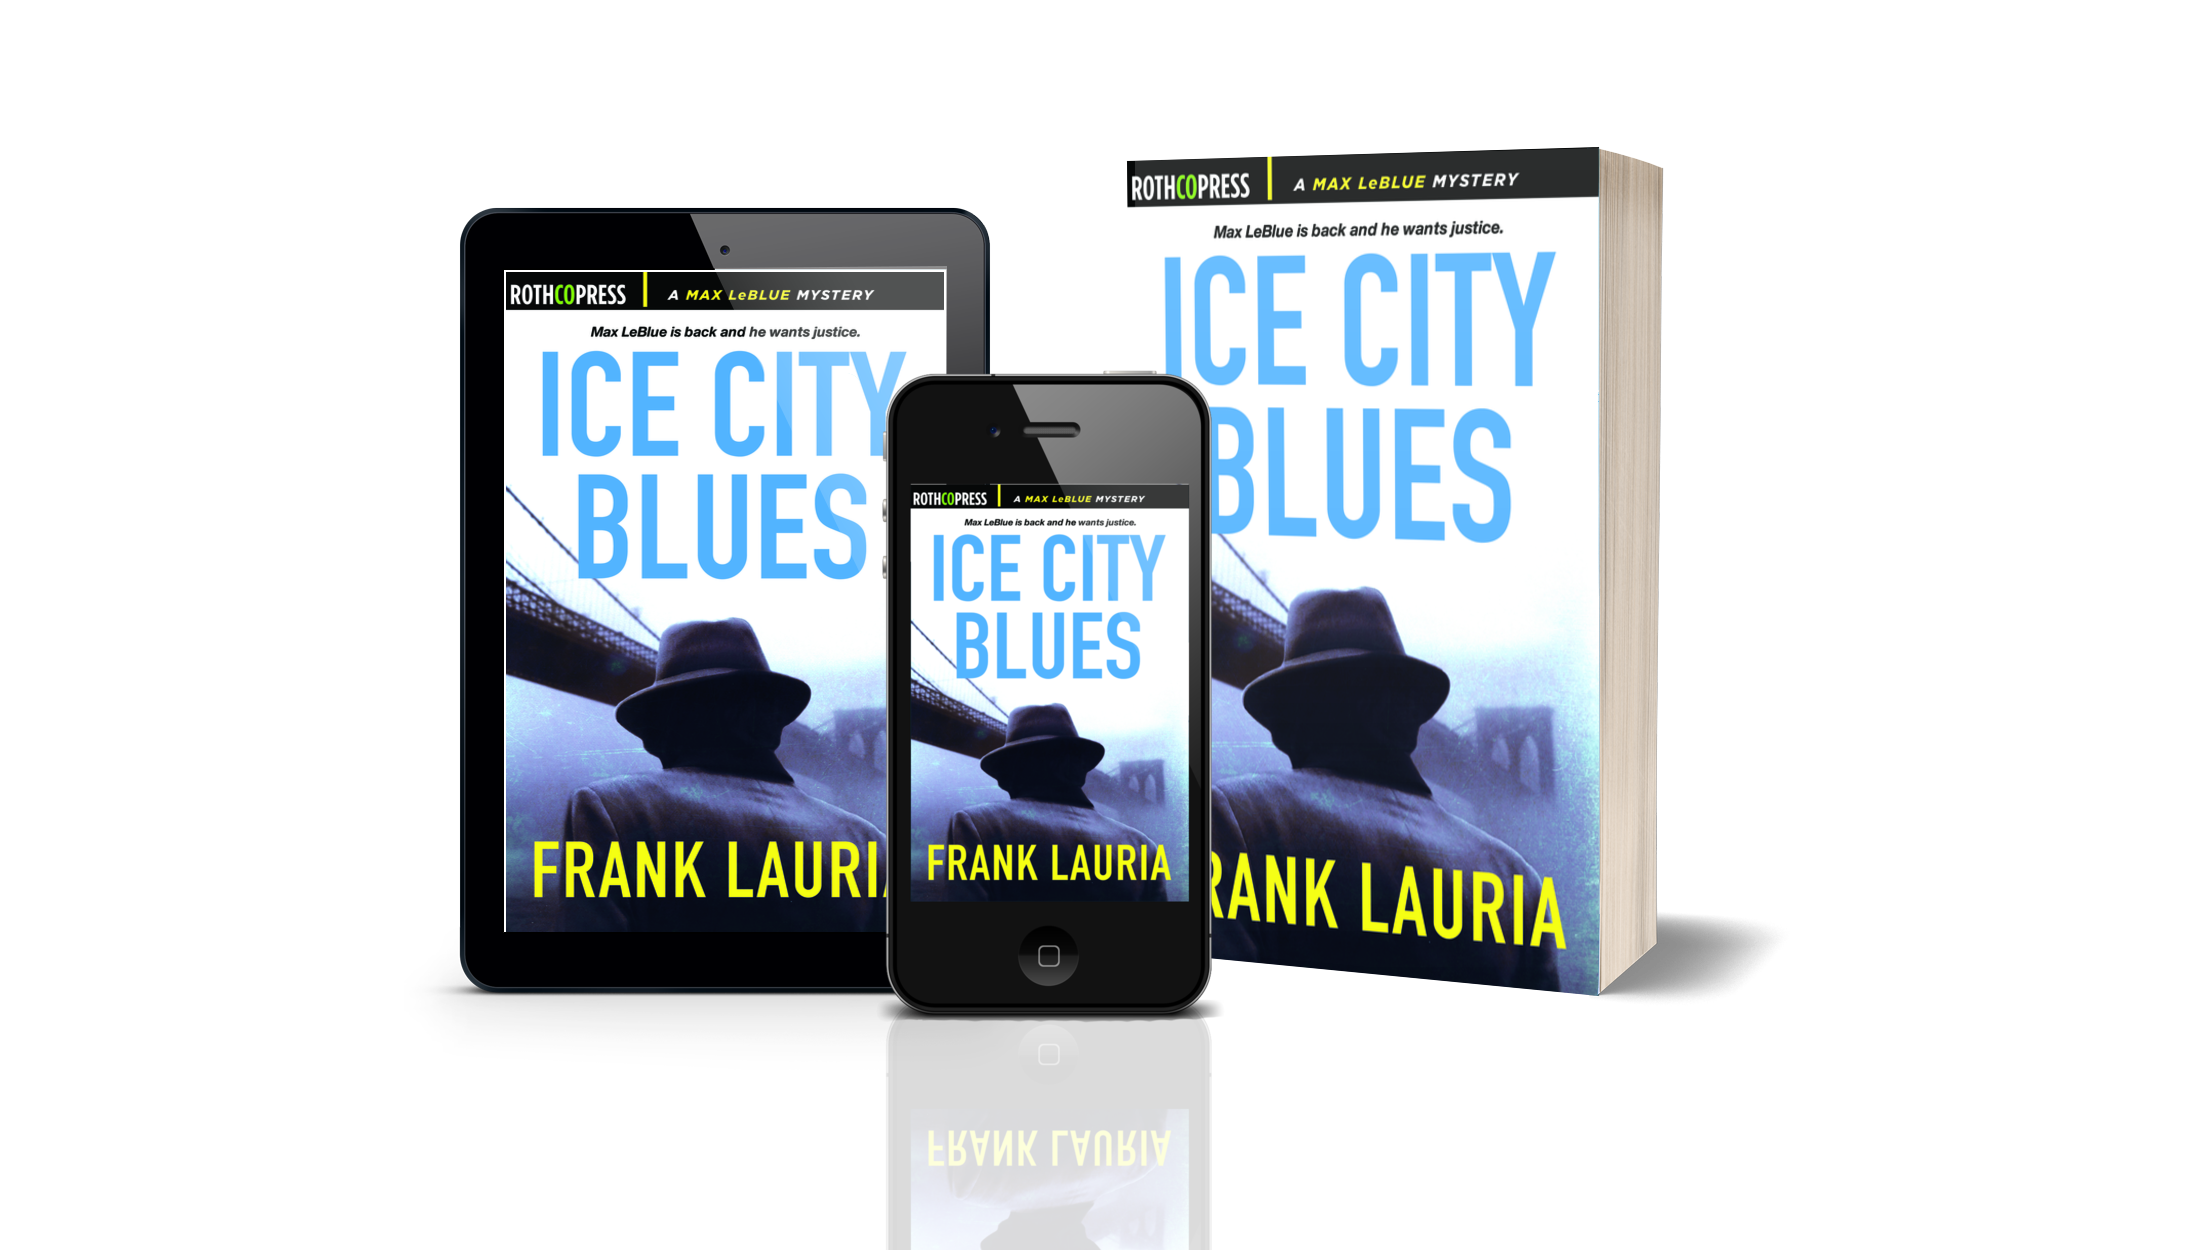 Ice City Blues by Frank Lauria